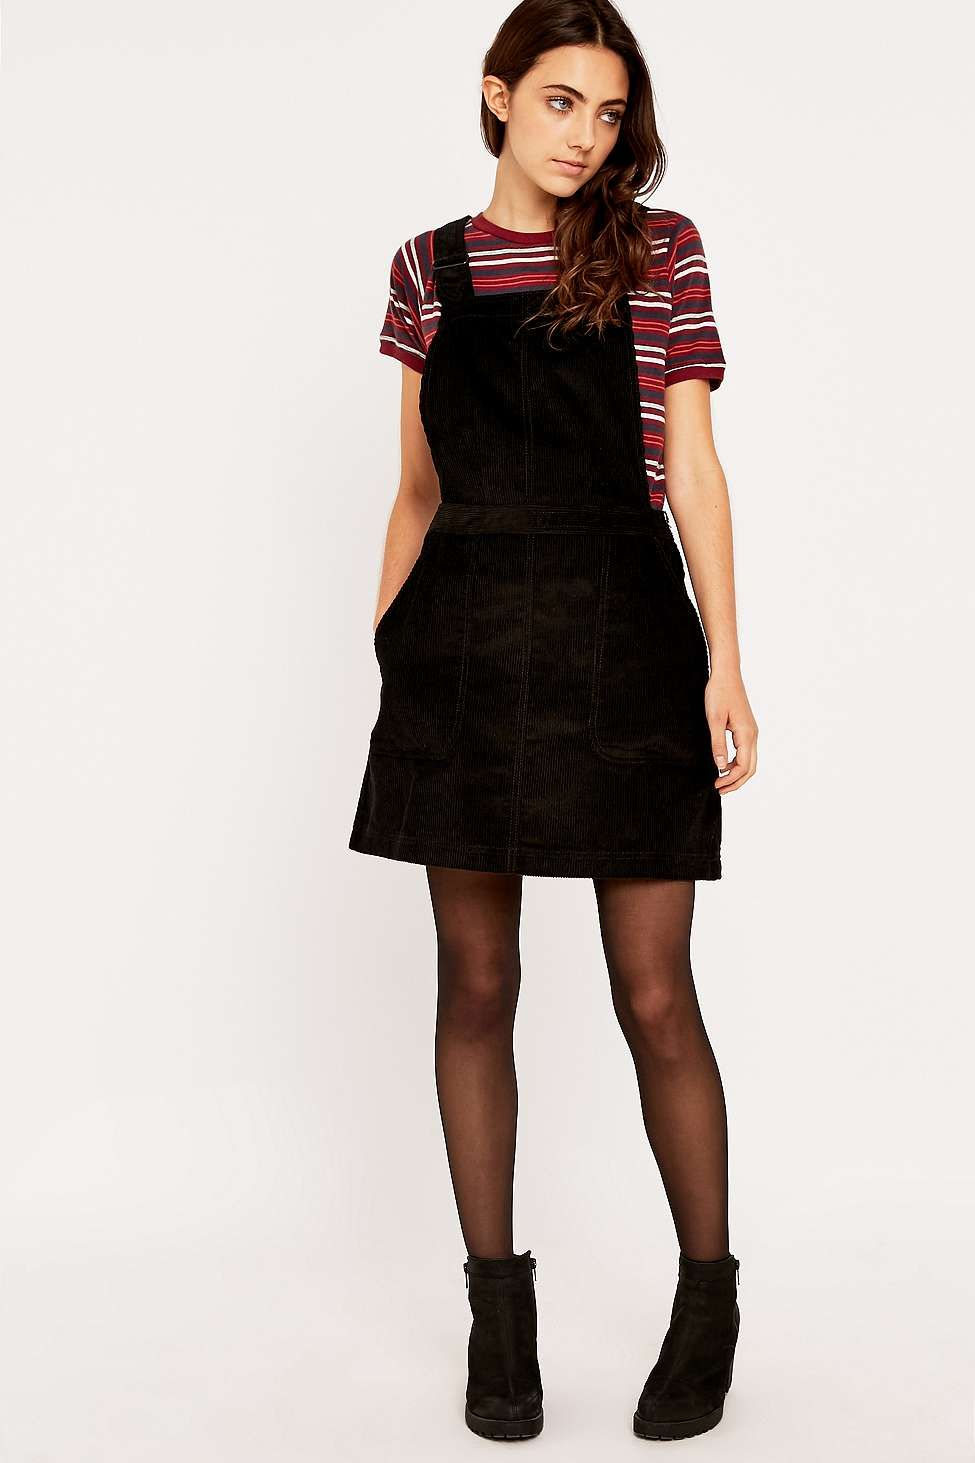 Sooo making this in jumbo cord. DG Corduroy Pinafore Dress - Urban Outfitters